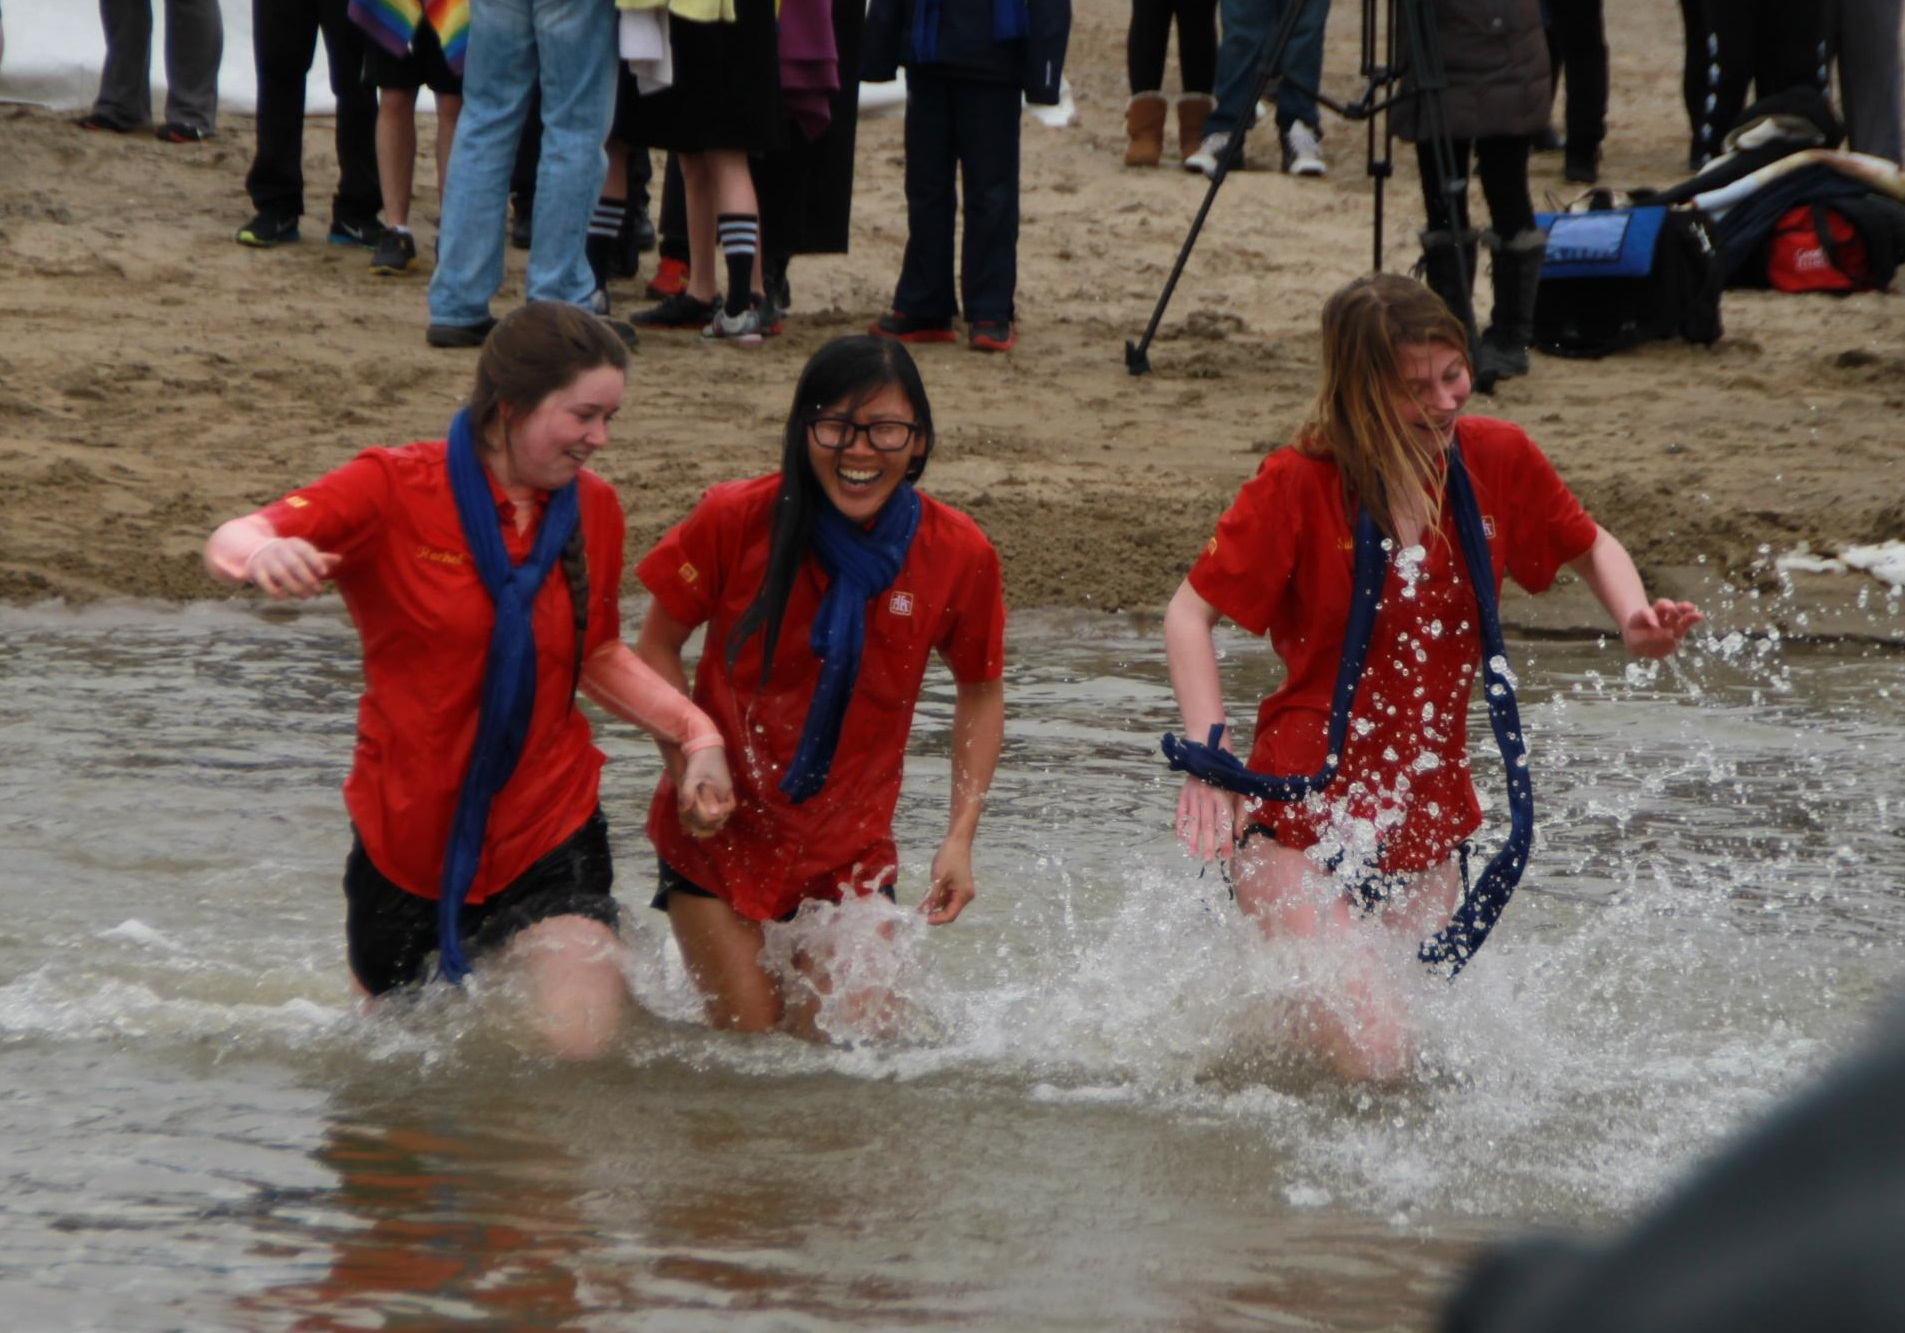 Around 150 dippers braved the cold water at Cedar Island Beach in Kingsville for the 14th annual Polar Bear Dip, March 22, 2014. (Photo courtesy of Aaron Gingerich)